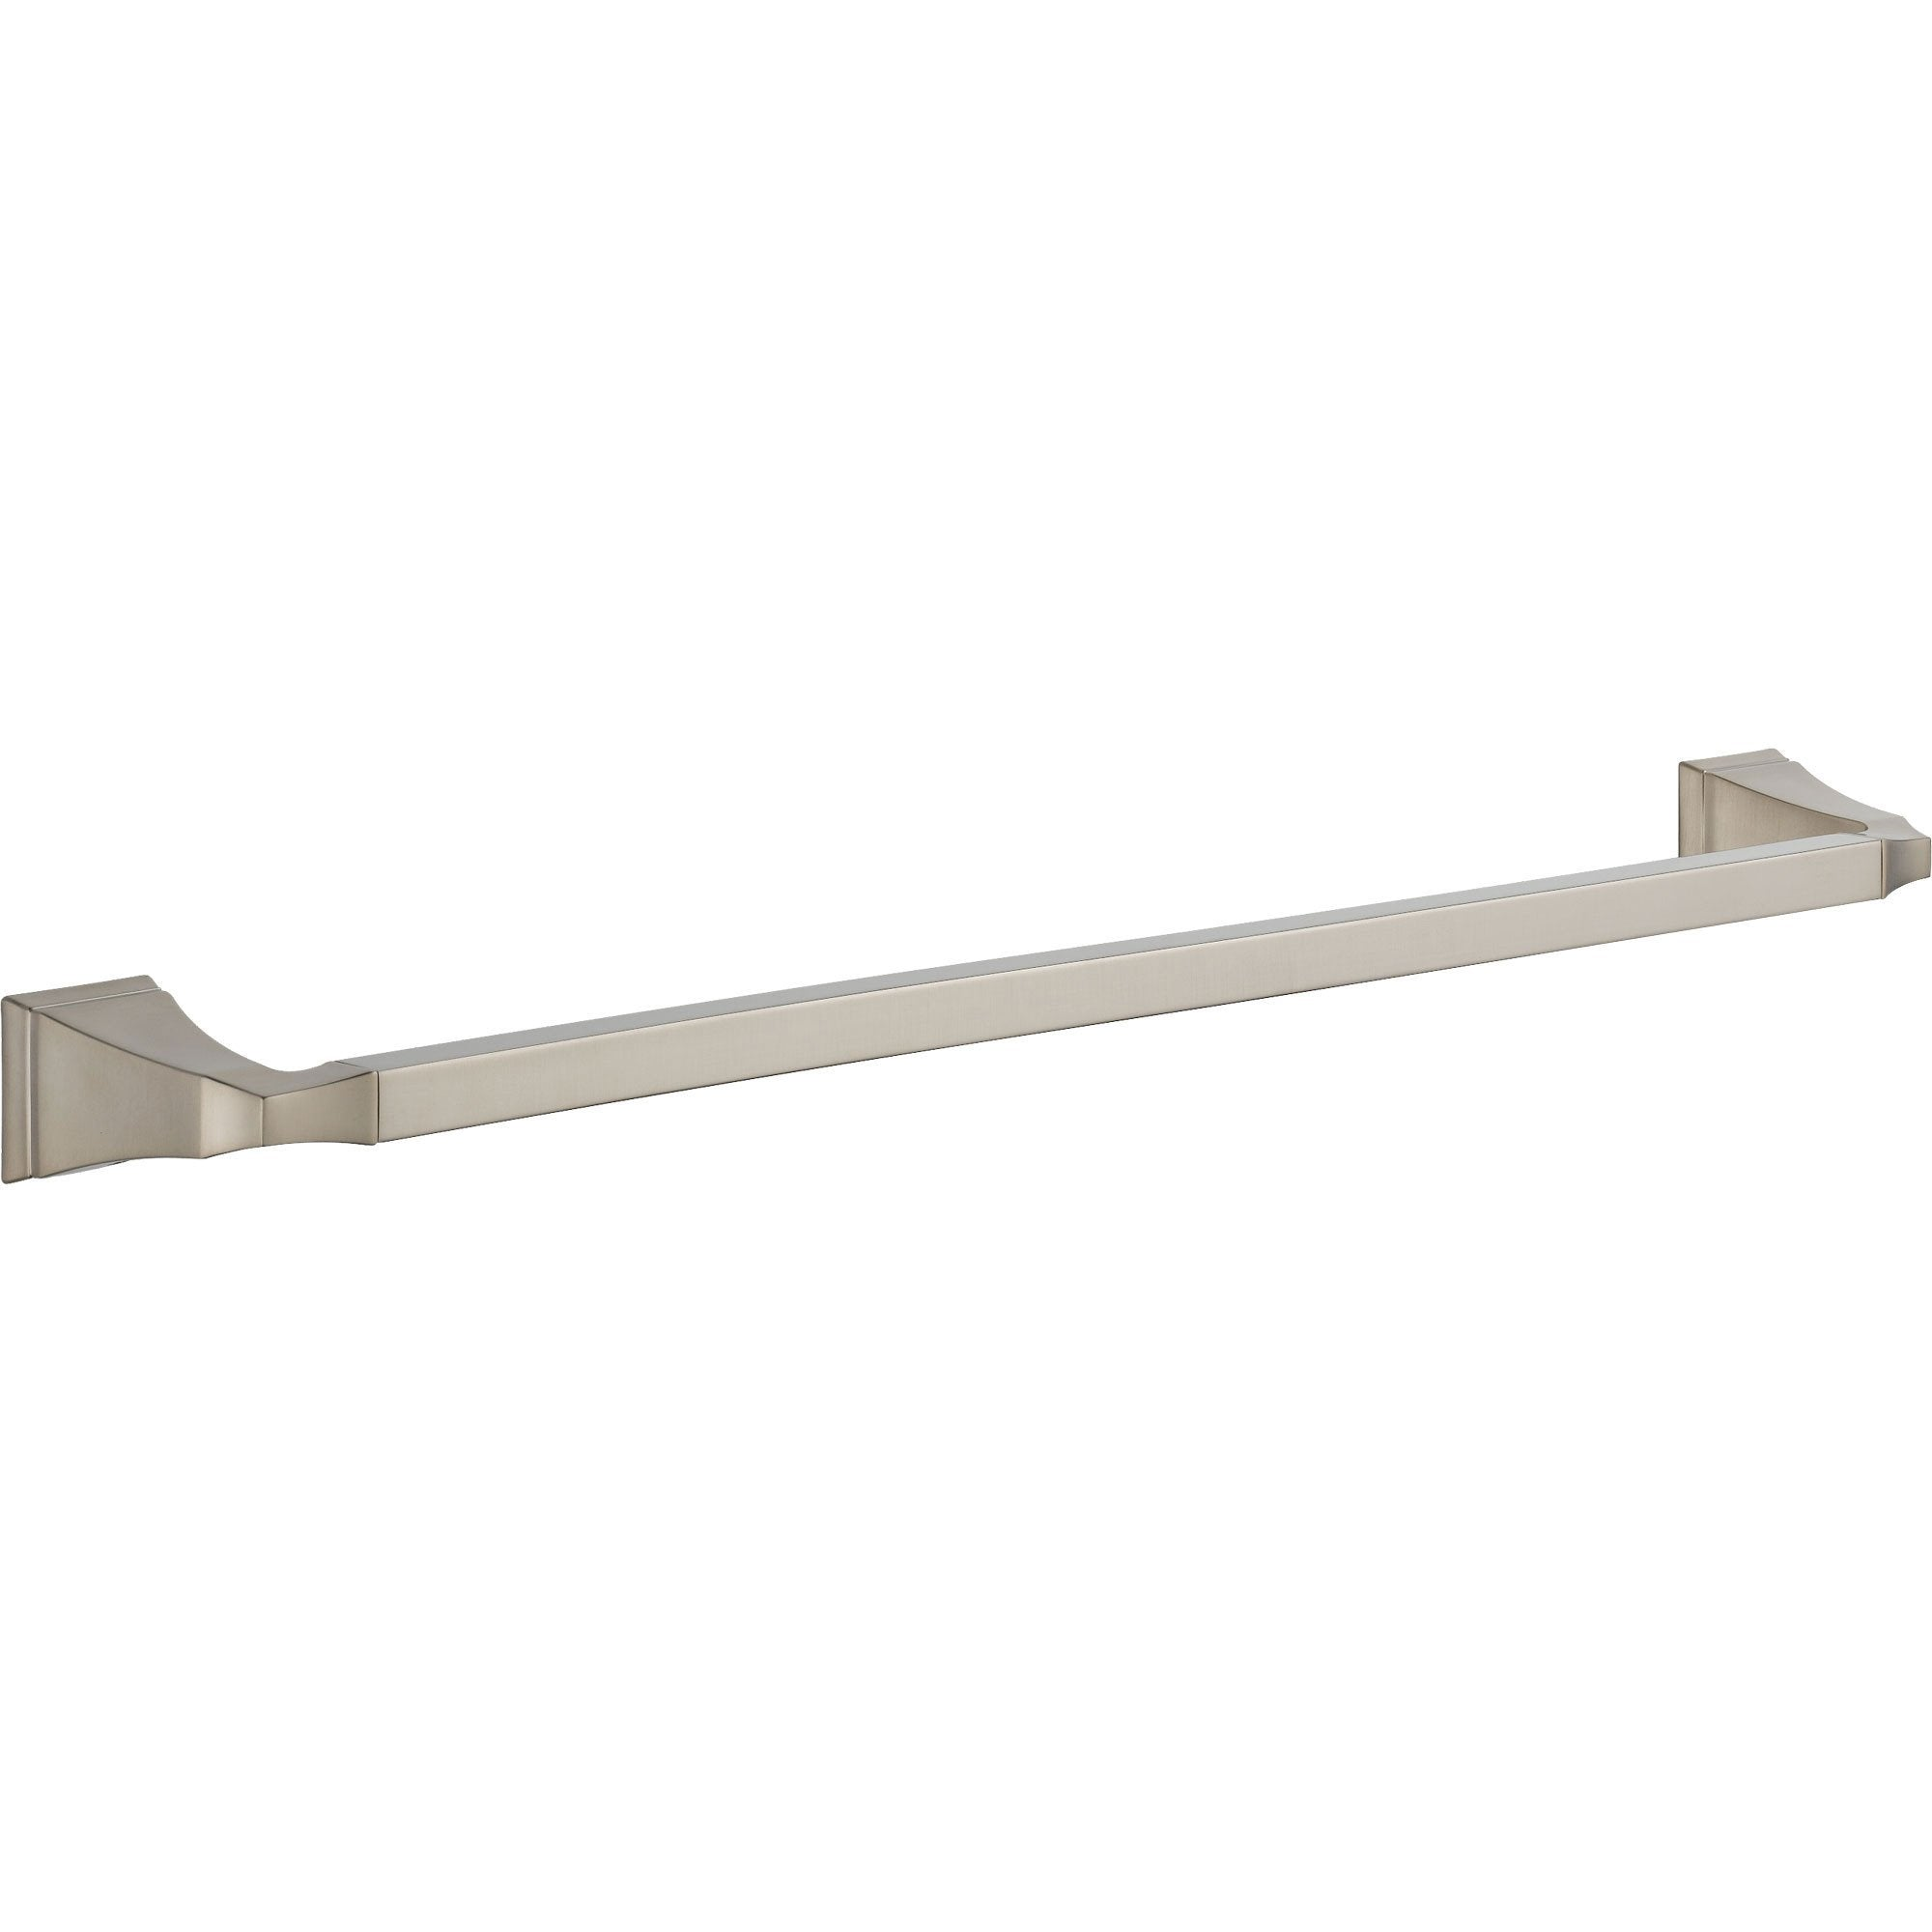 Delta Dryden Stainless Steel Finish 24 inch Modern Single Towel Bar 455009